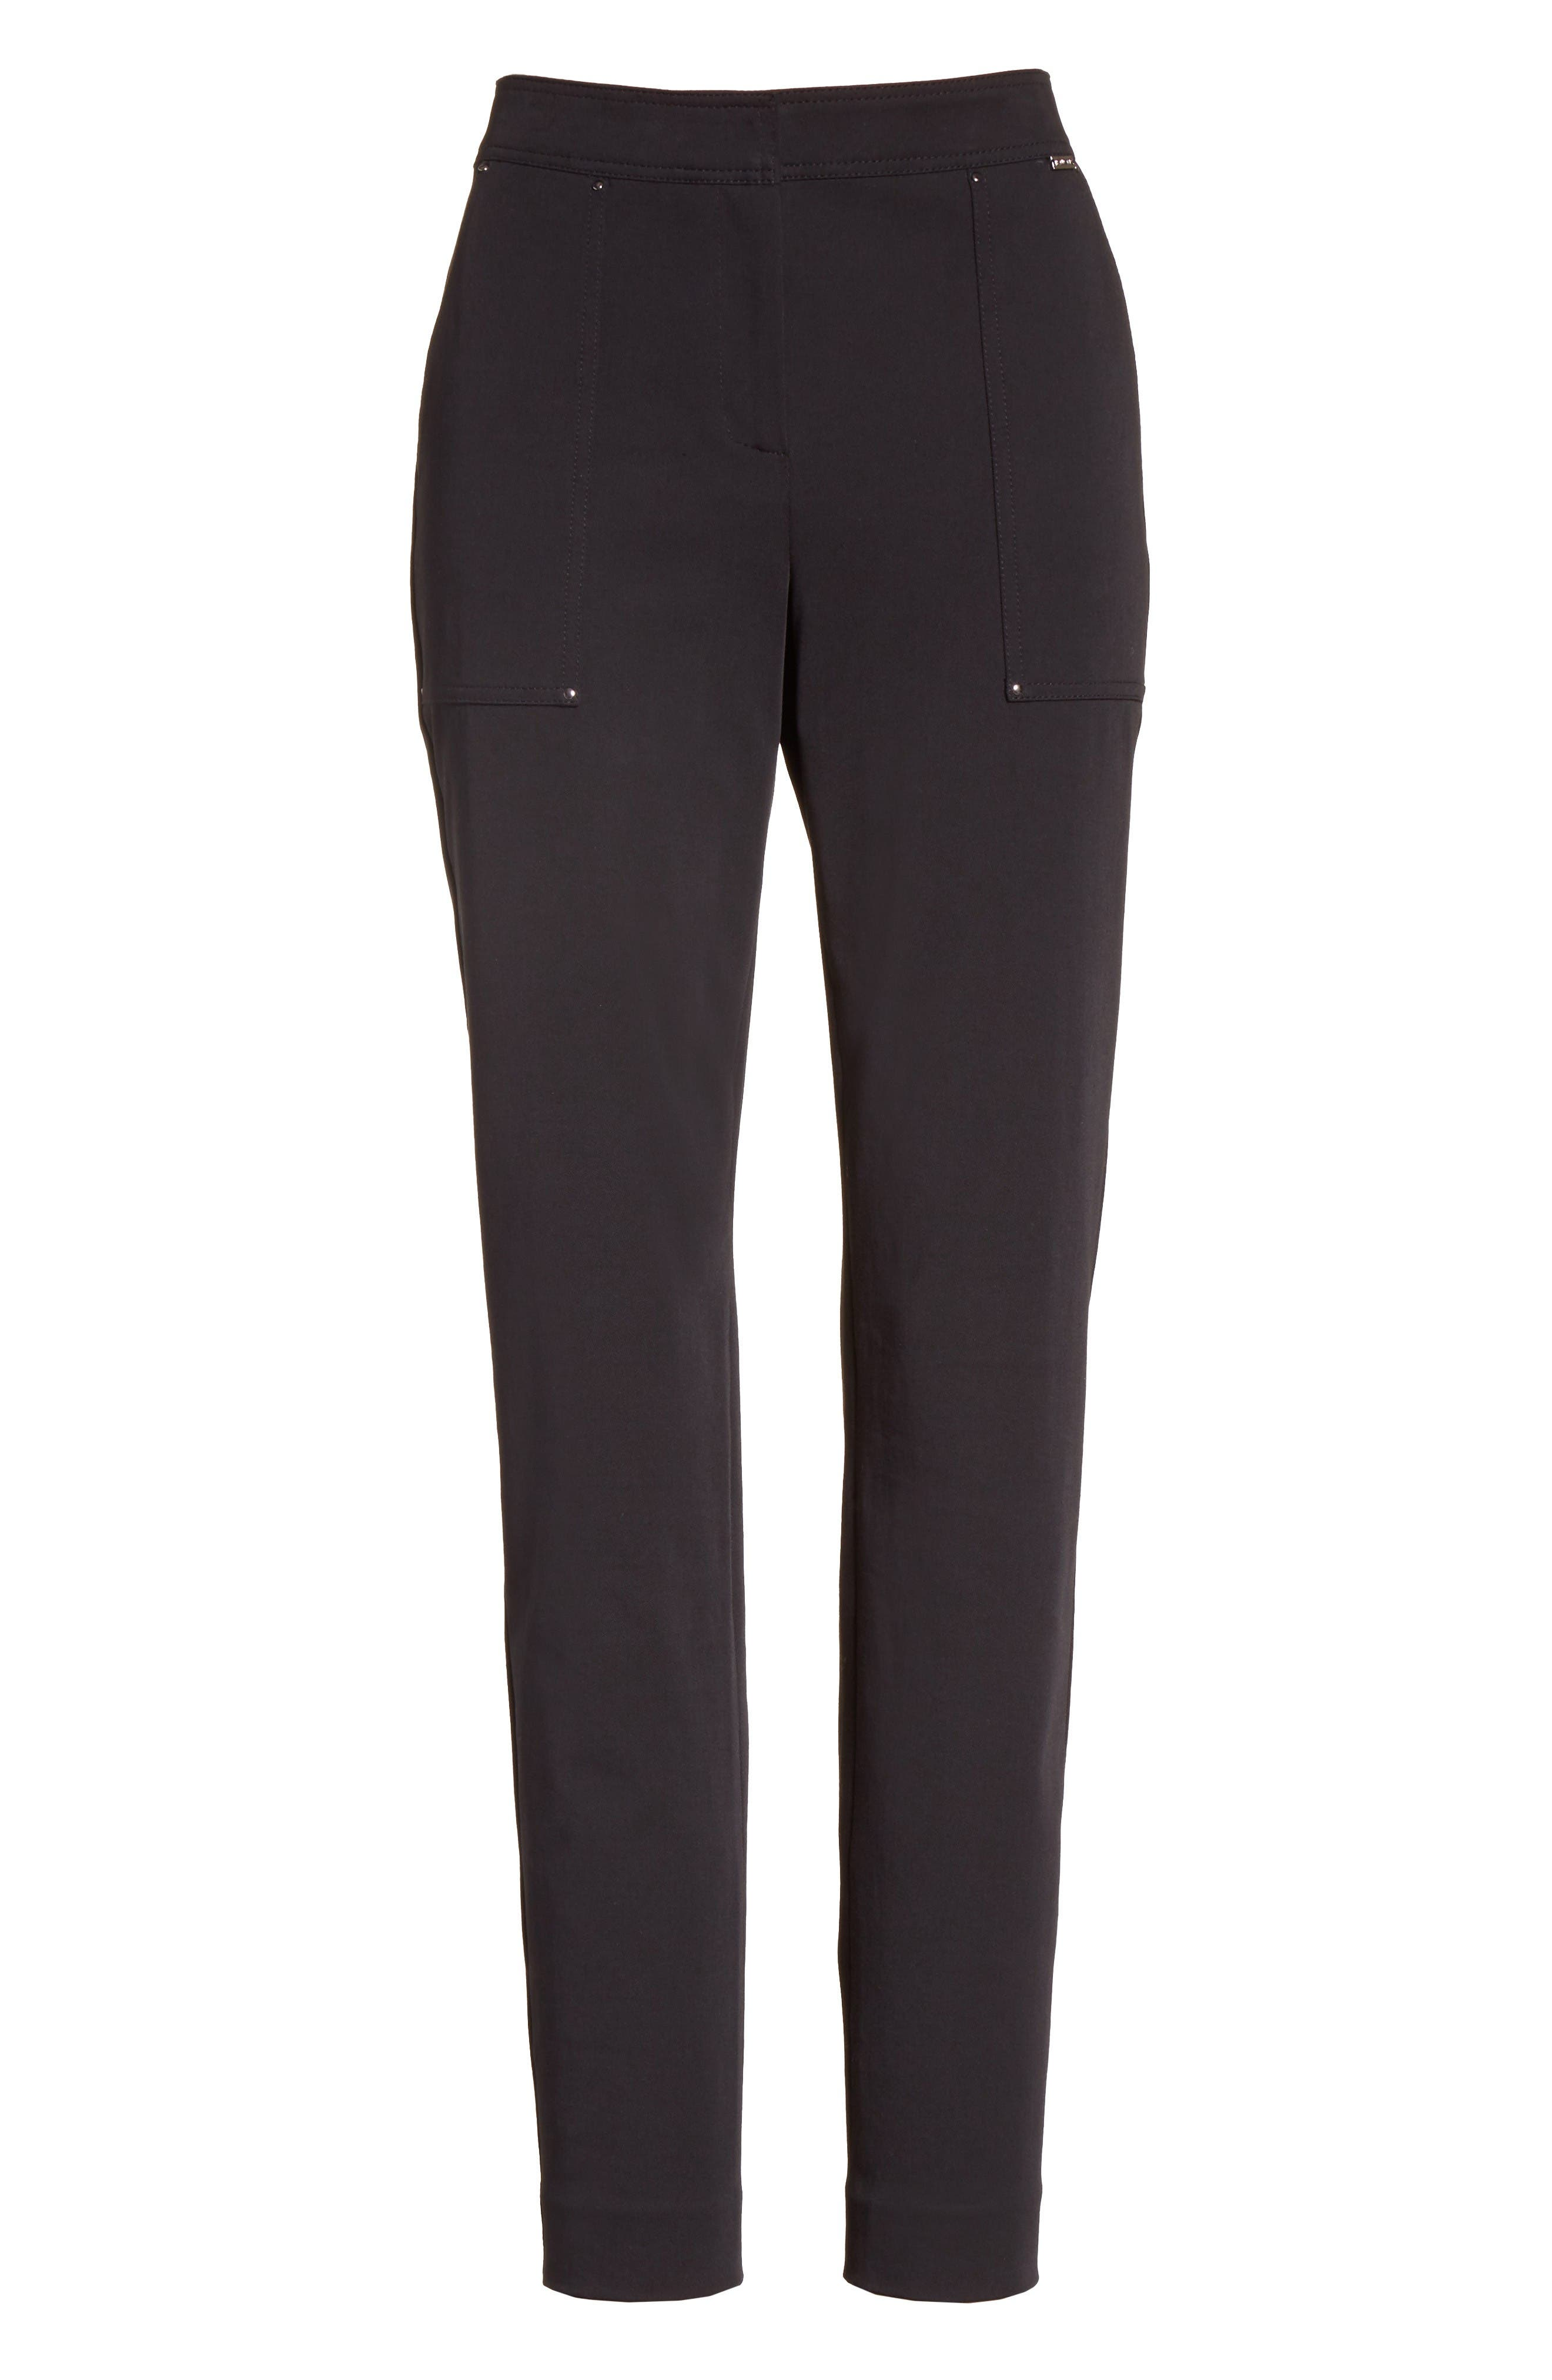 Fine Stretch Twill Skinny Pants,                             Alternate thumbnail 8, color,                             Caviar